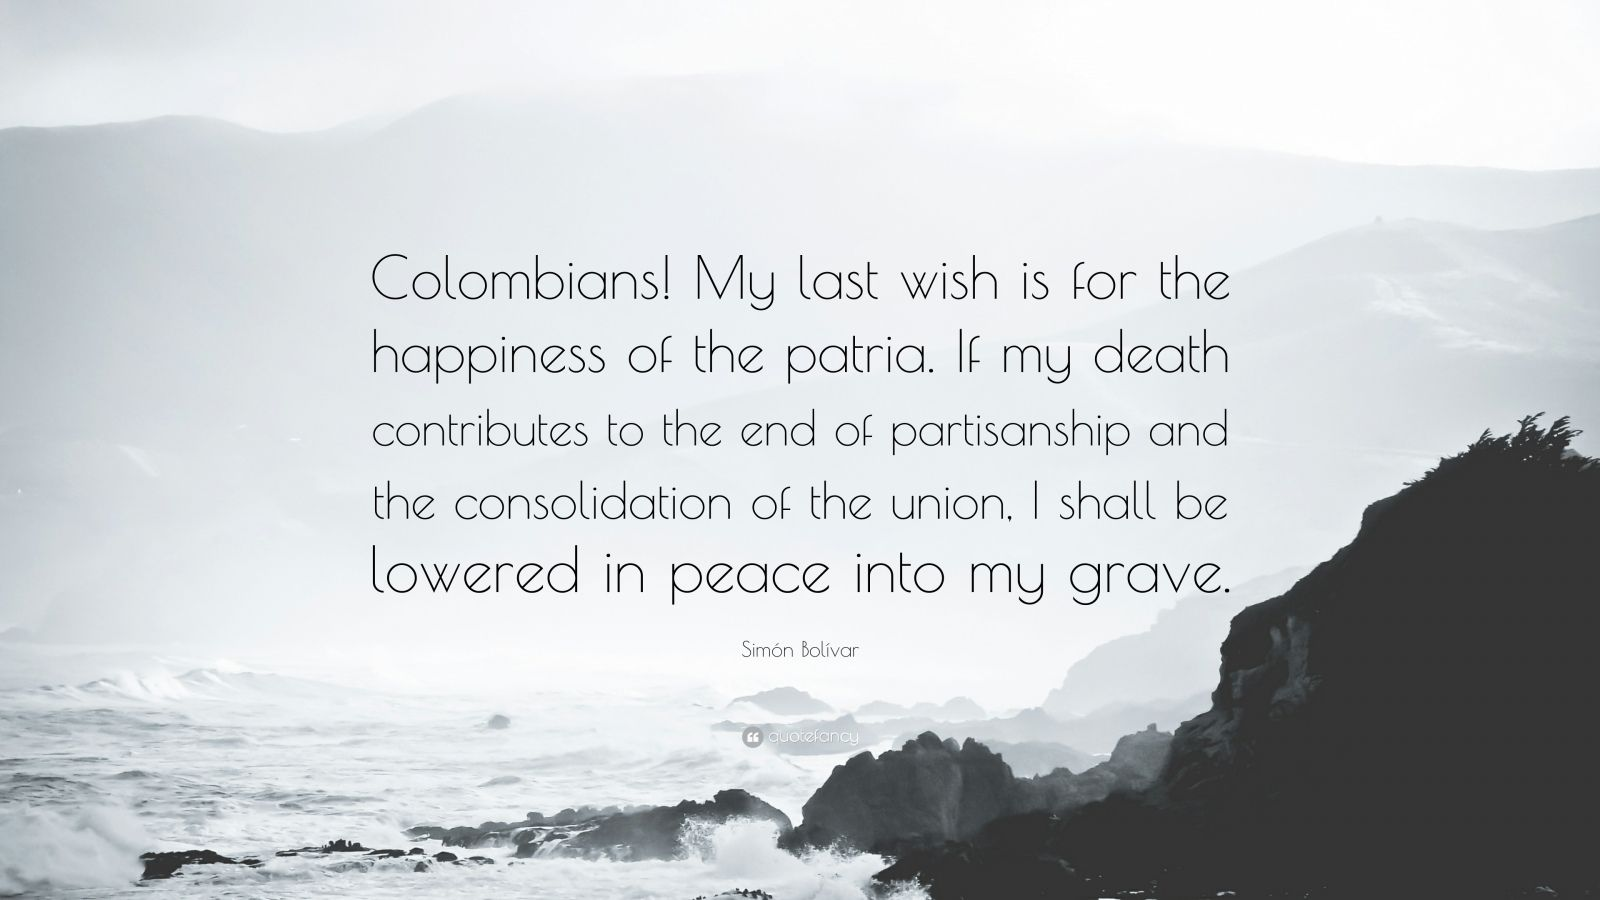 """Simón Bolívar Quote: """"Colombians! My last wish is for the happiness of the patria. If my death contributes to the end of partisanship and the consolidation of the union, I shall be lowered in peace into my grave."""""""